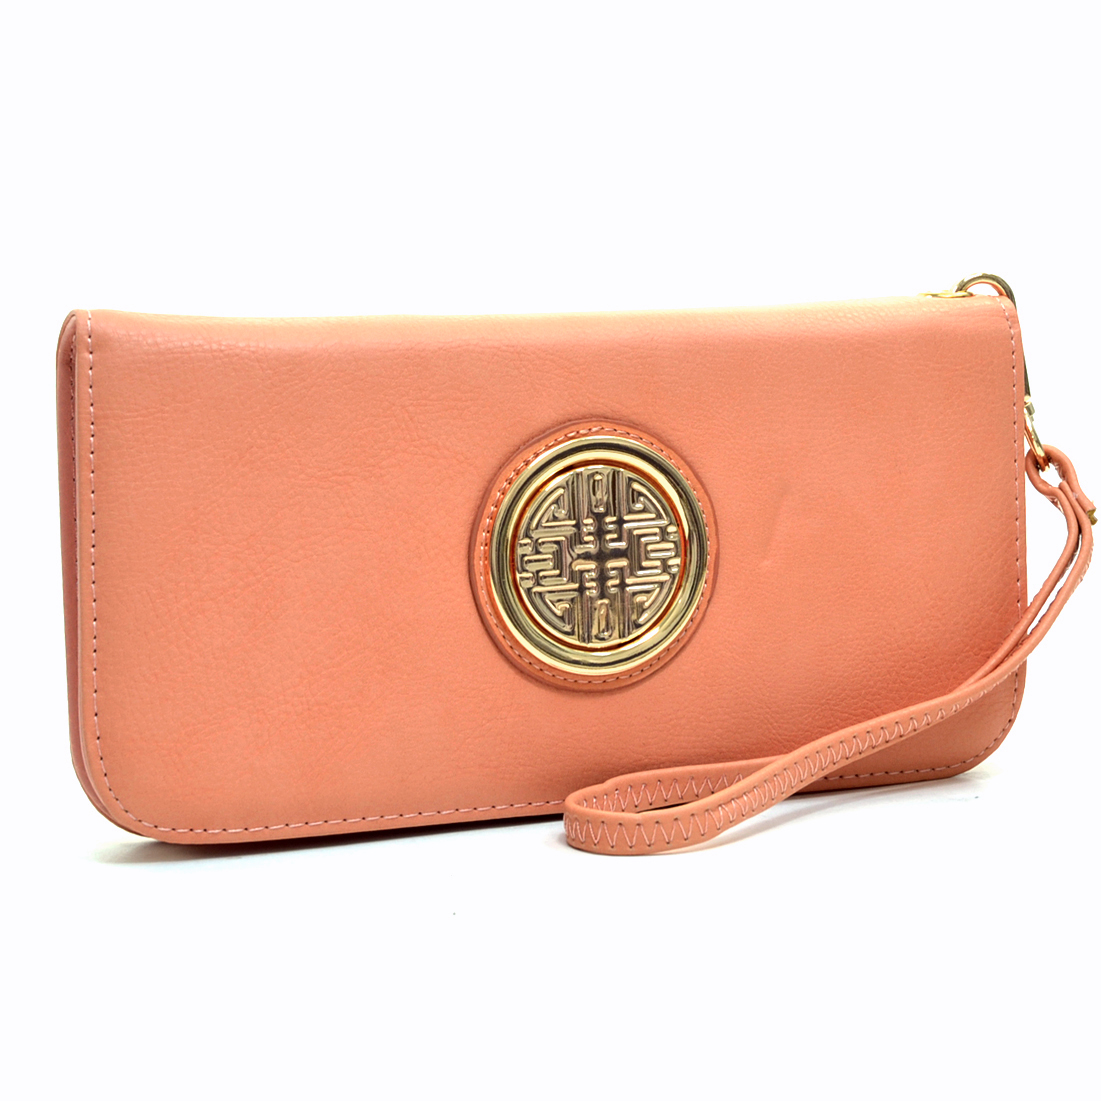 Emblem Embossed Zip Around Wallet With Removable Wrist Strap